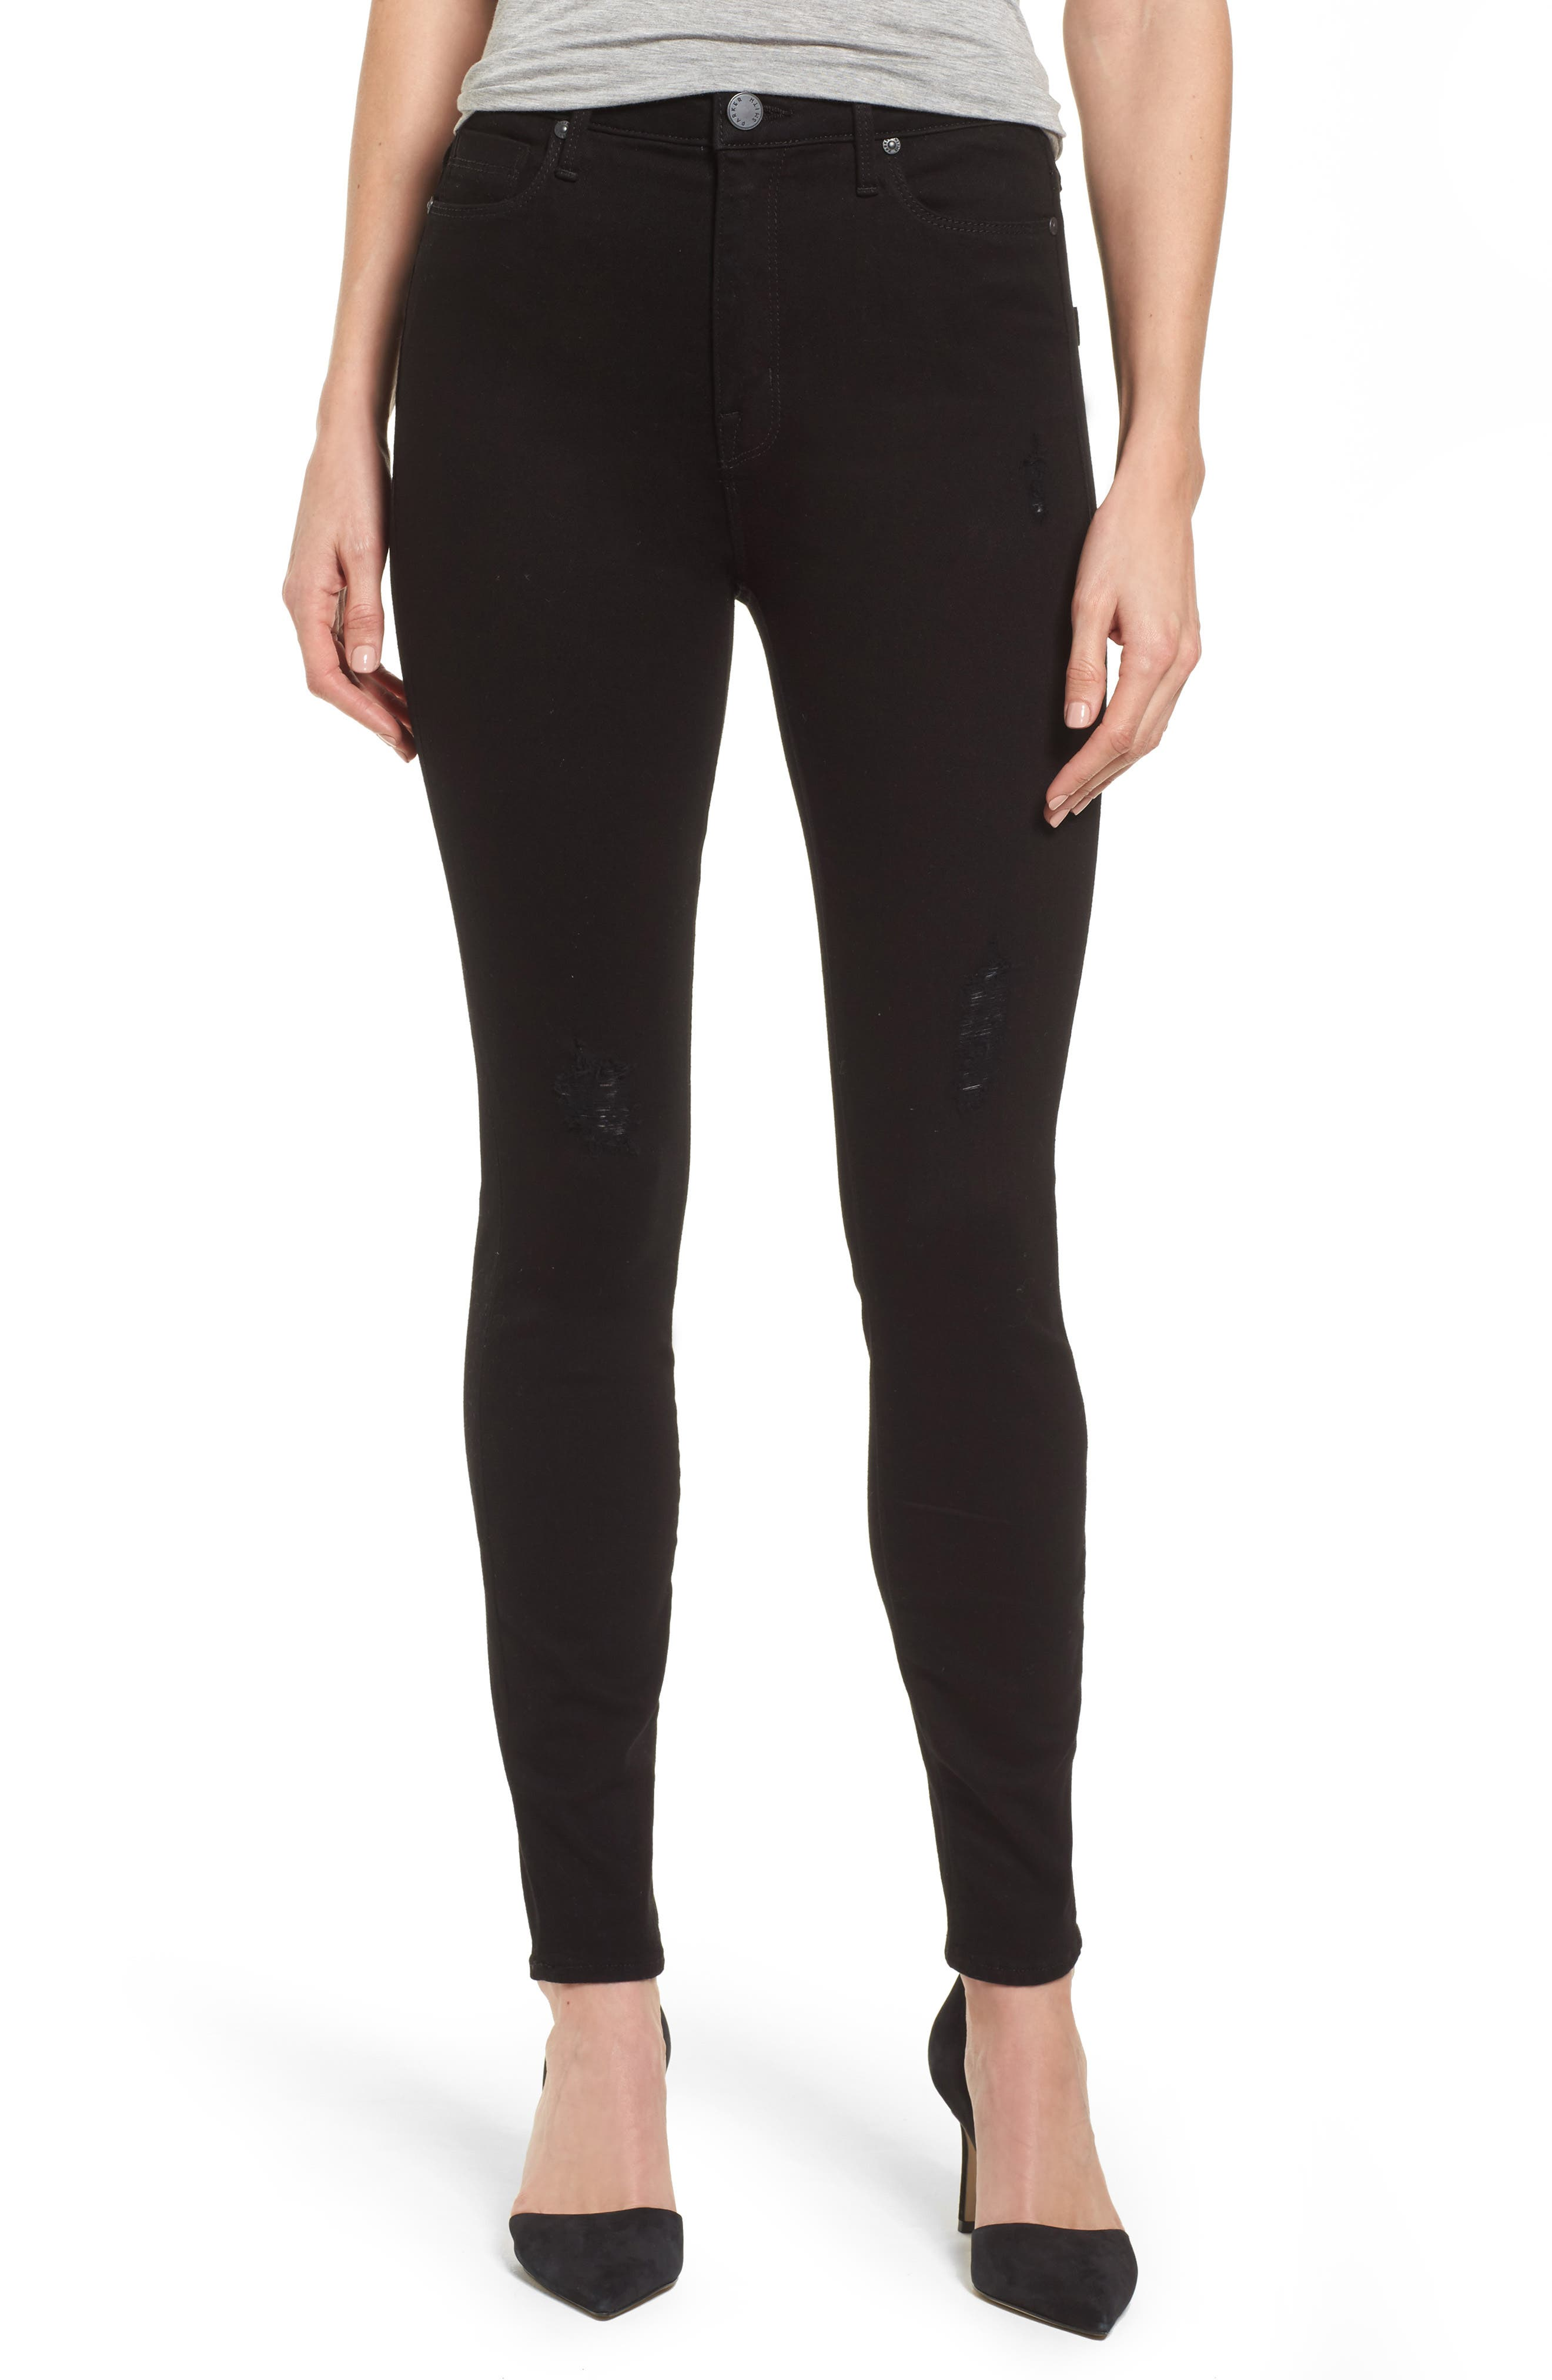 Bombshell Skinny Jeans,                         Main,                         color, Black Sea